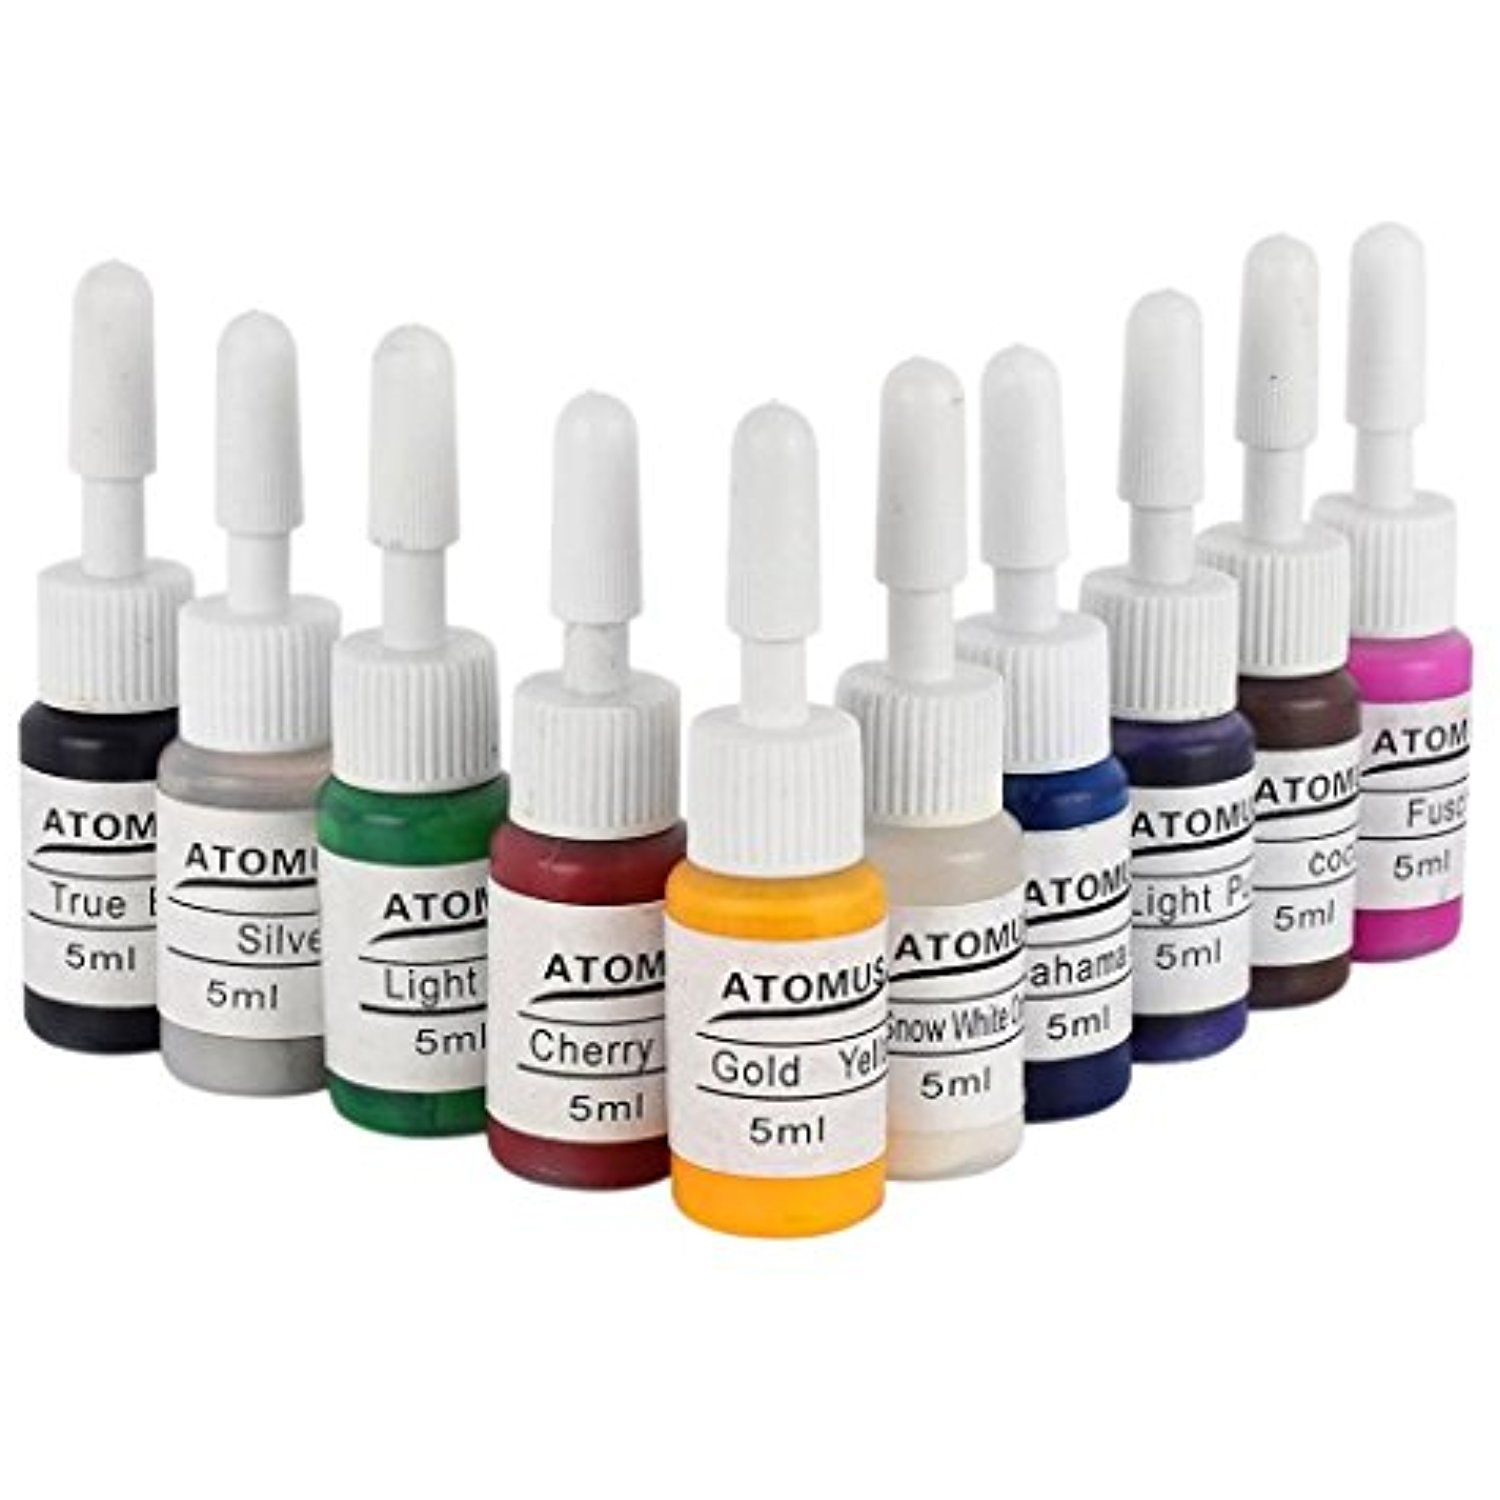 Body tattoo makeup microblading 10 colors ink pigment set